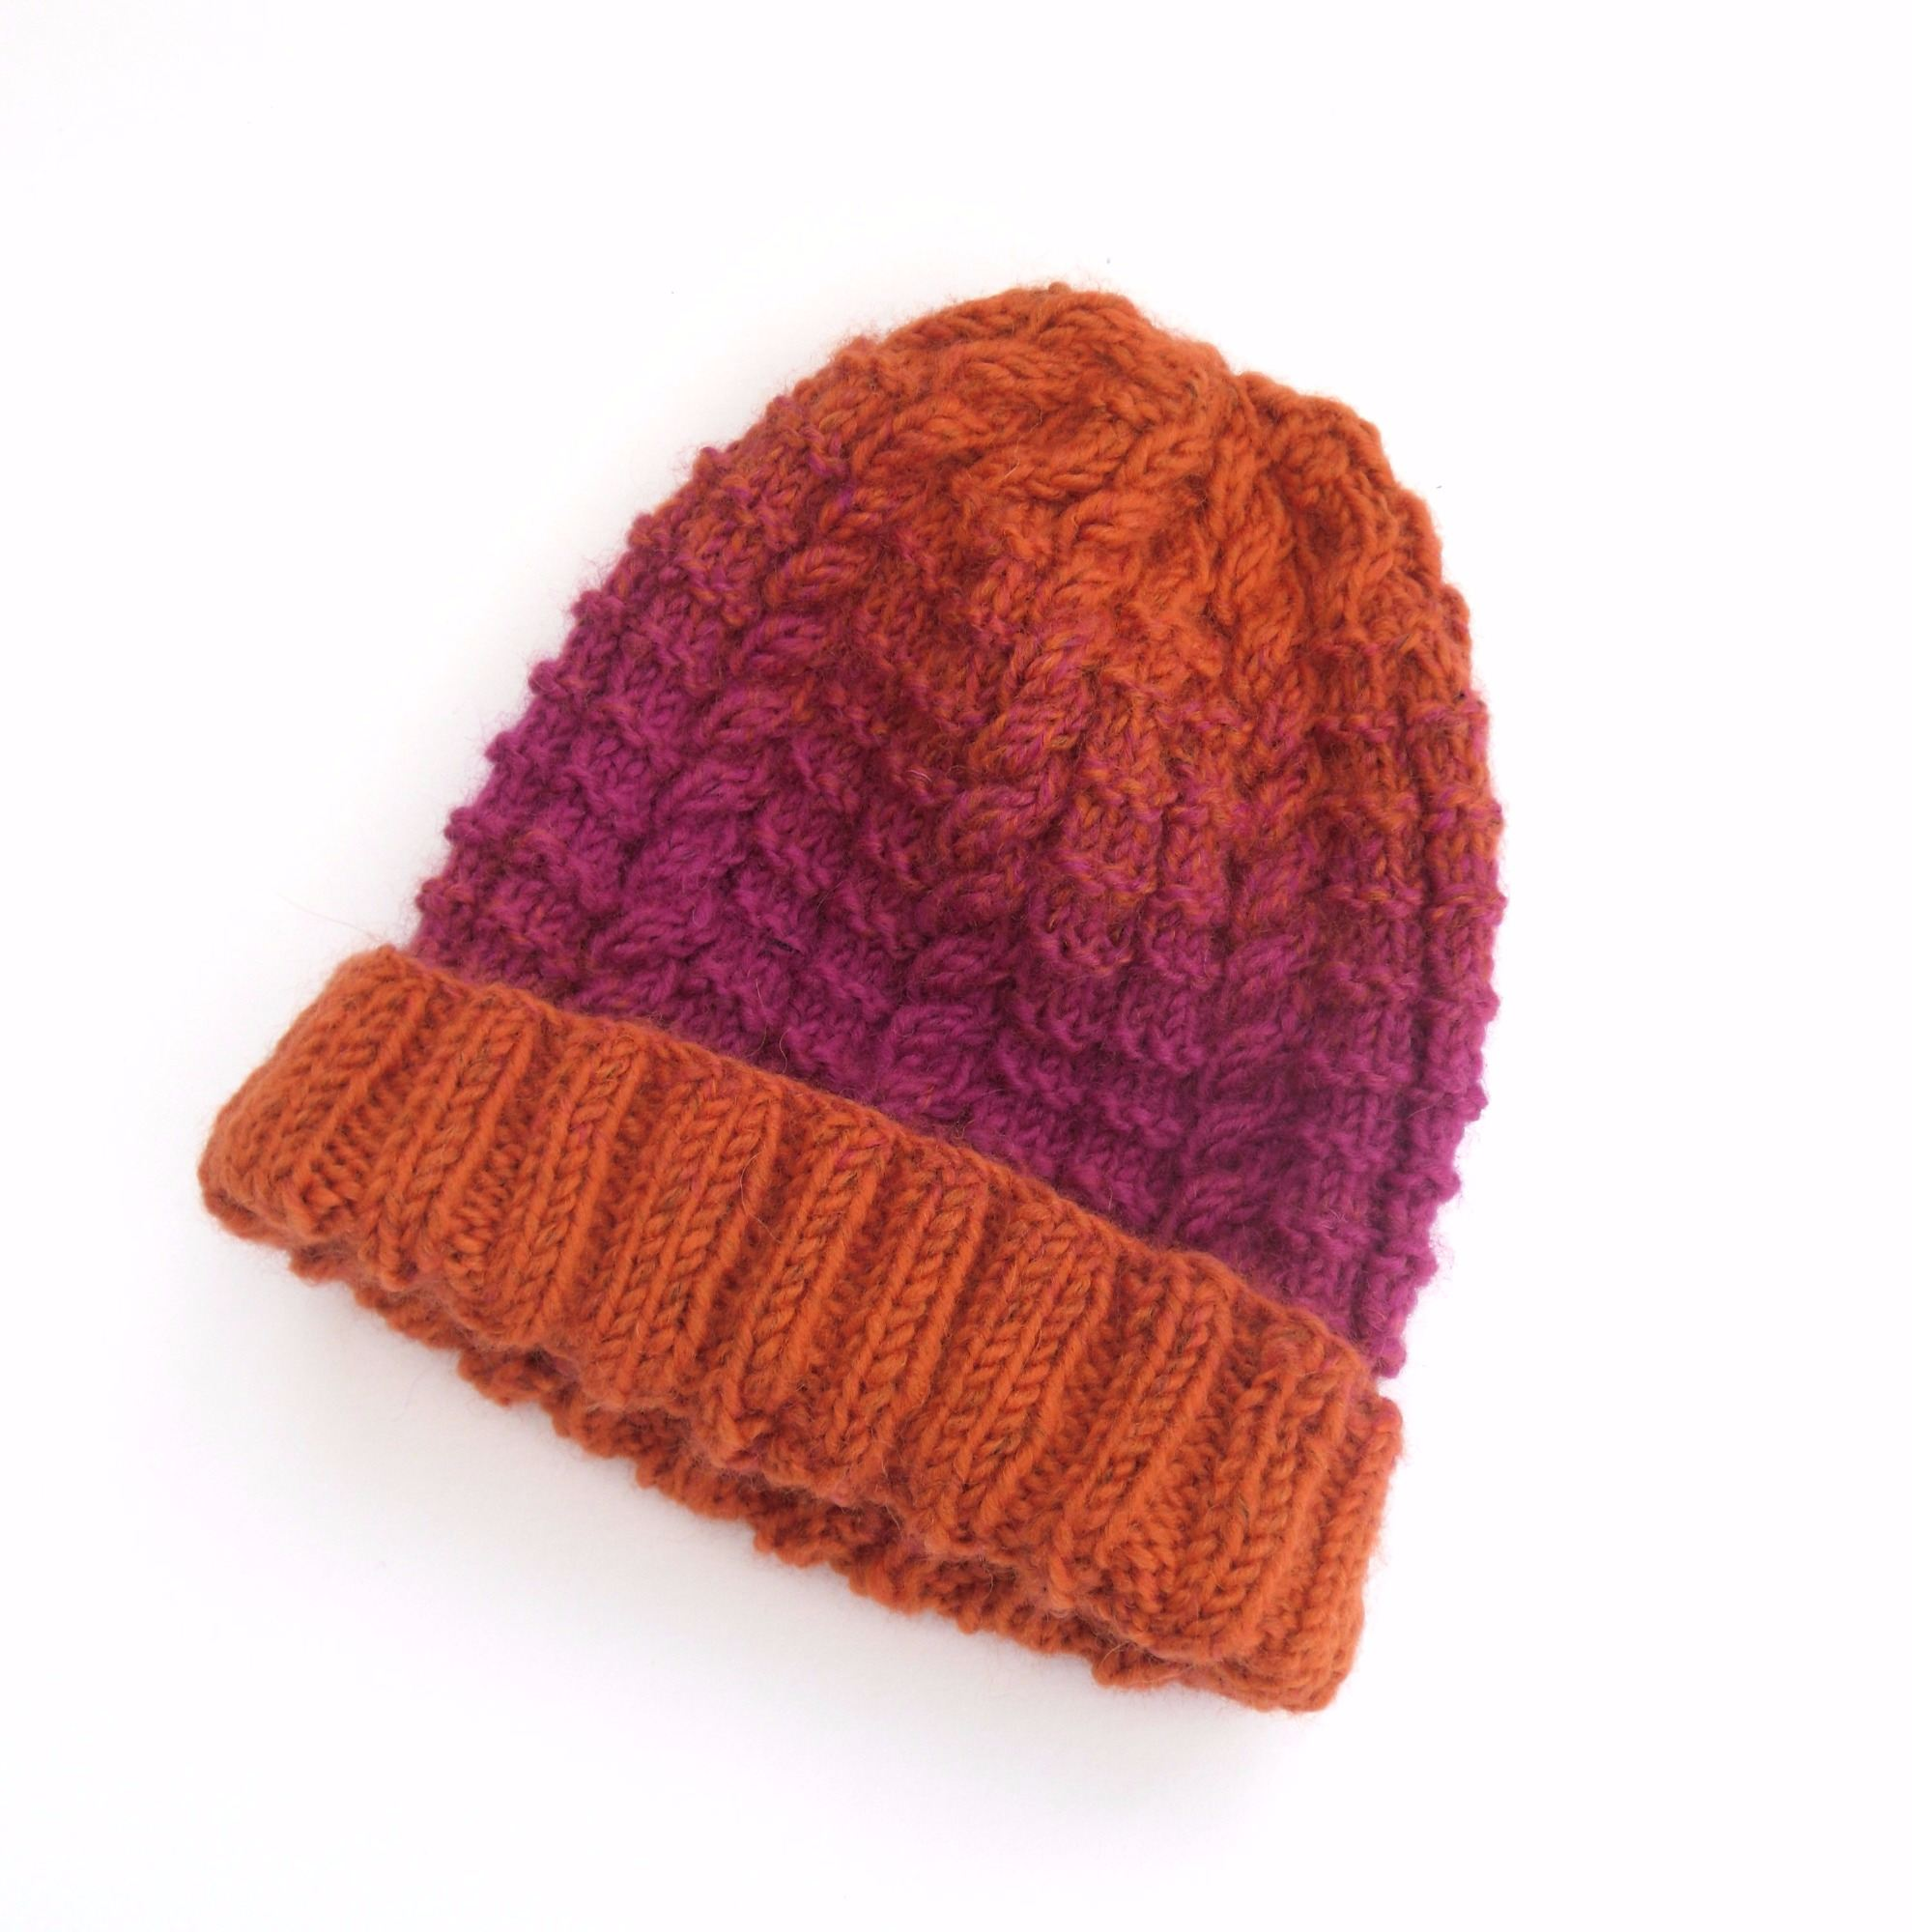 beanie knitting kit